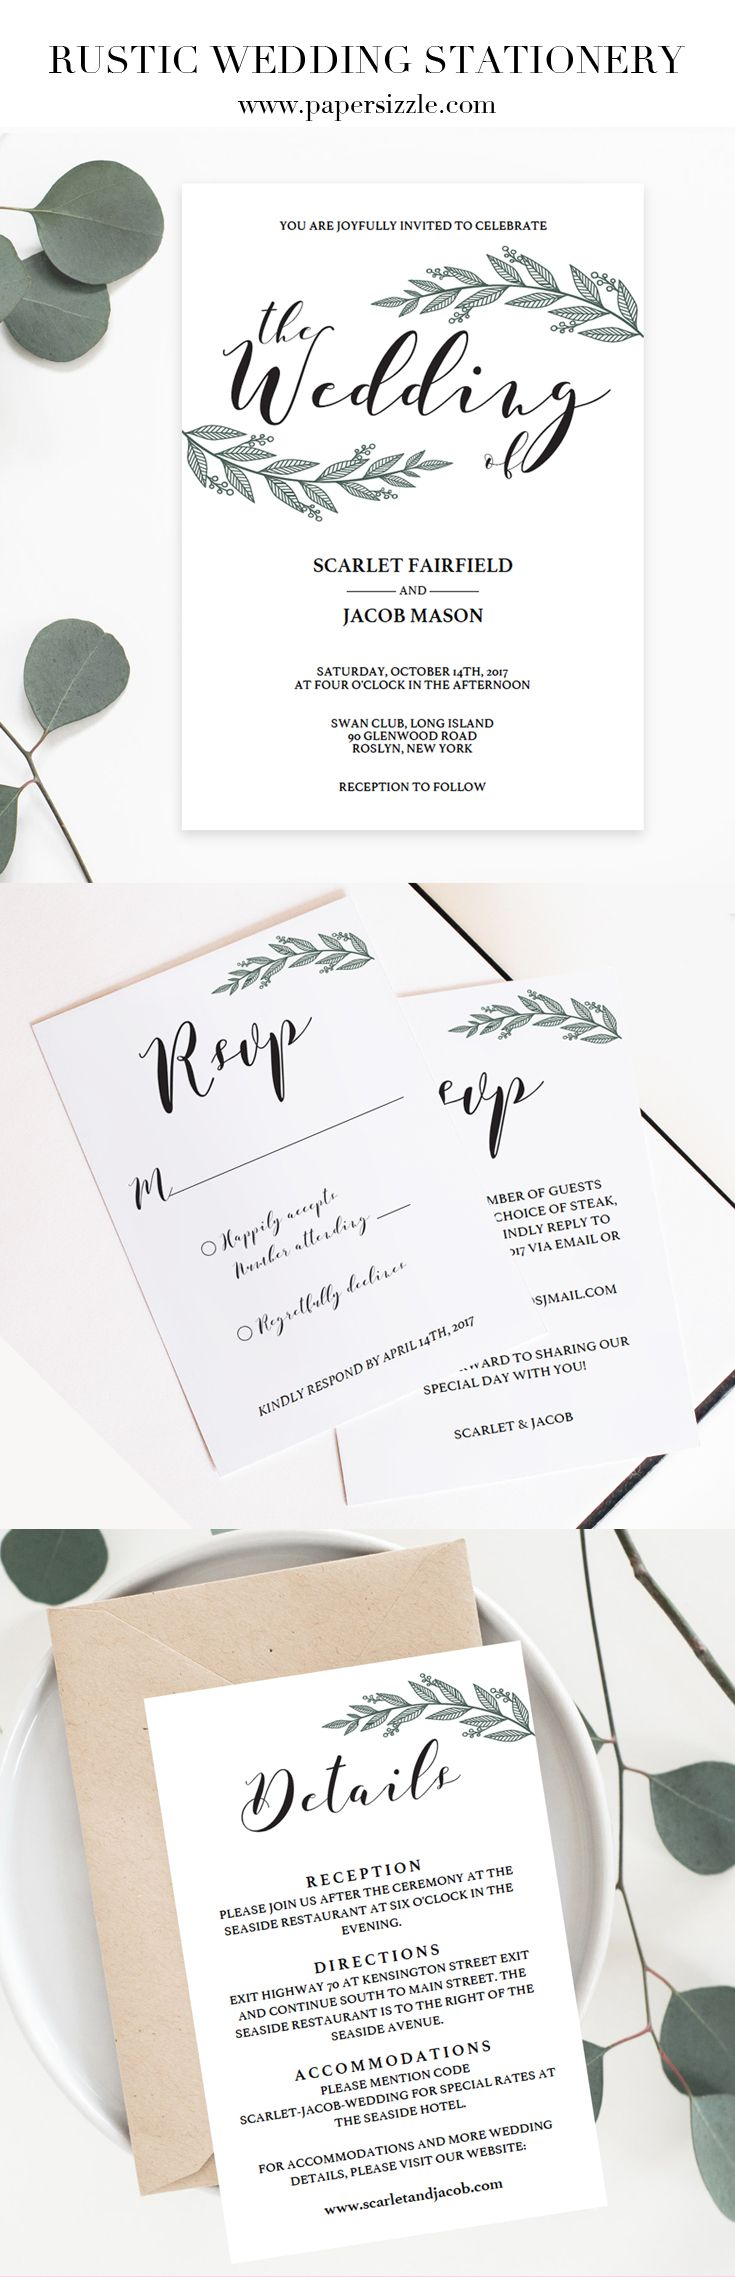 """This """"Rustic Branch"""" wedding invitation suite by Papersizzle is perfect for any rustic or greenery wedding. The set consists of a wedding invitation, two rsvp cards and two details cards. The rustic DIY stationery templates are editable in Adobe Acrobat Reader (free version), which make them easy AND perfect for any couple on a budget as there is no need for a professional editor. Sign up for our newsletter atpapersizzle.com/...and receive 15% off your first order!"""